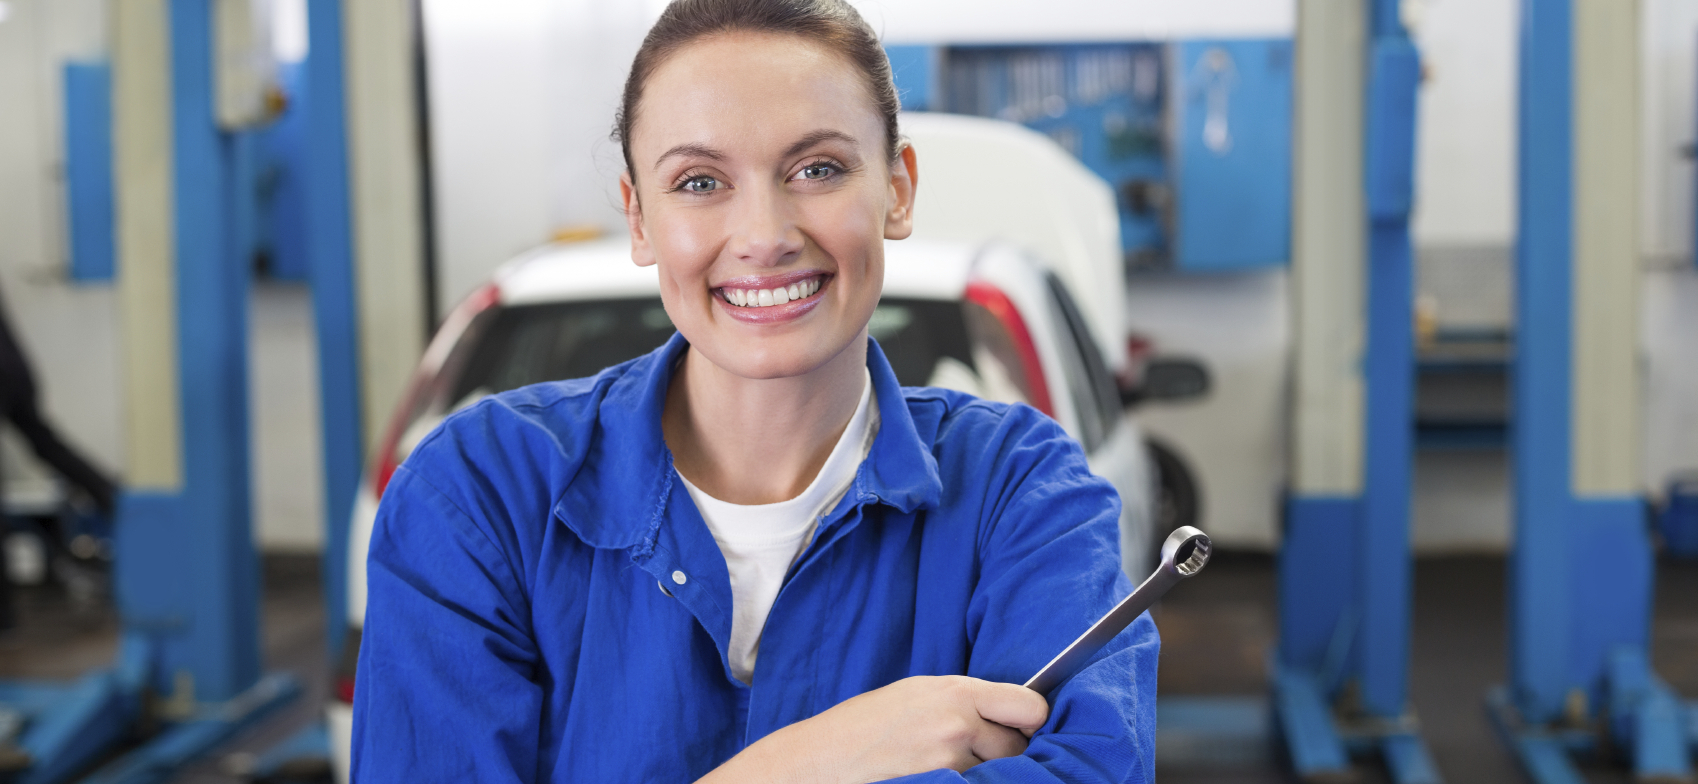 Brake Repair Service near Rosenberg, TX